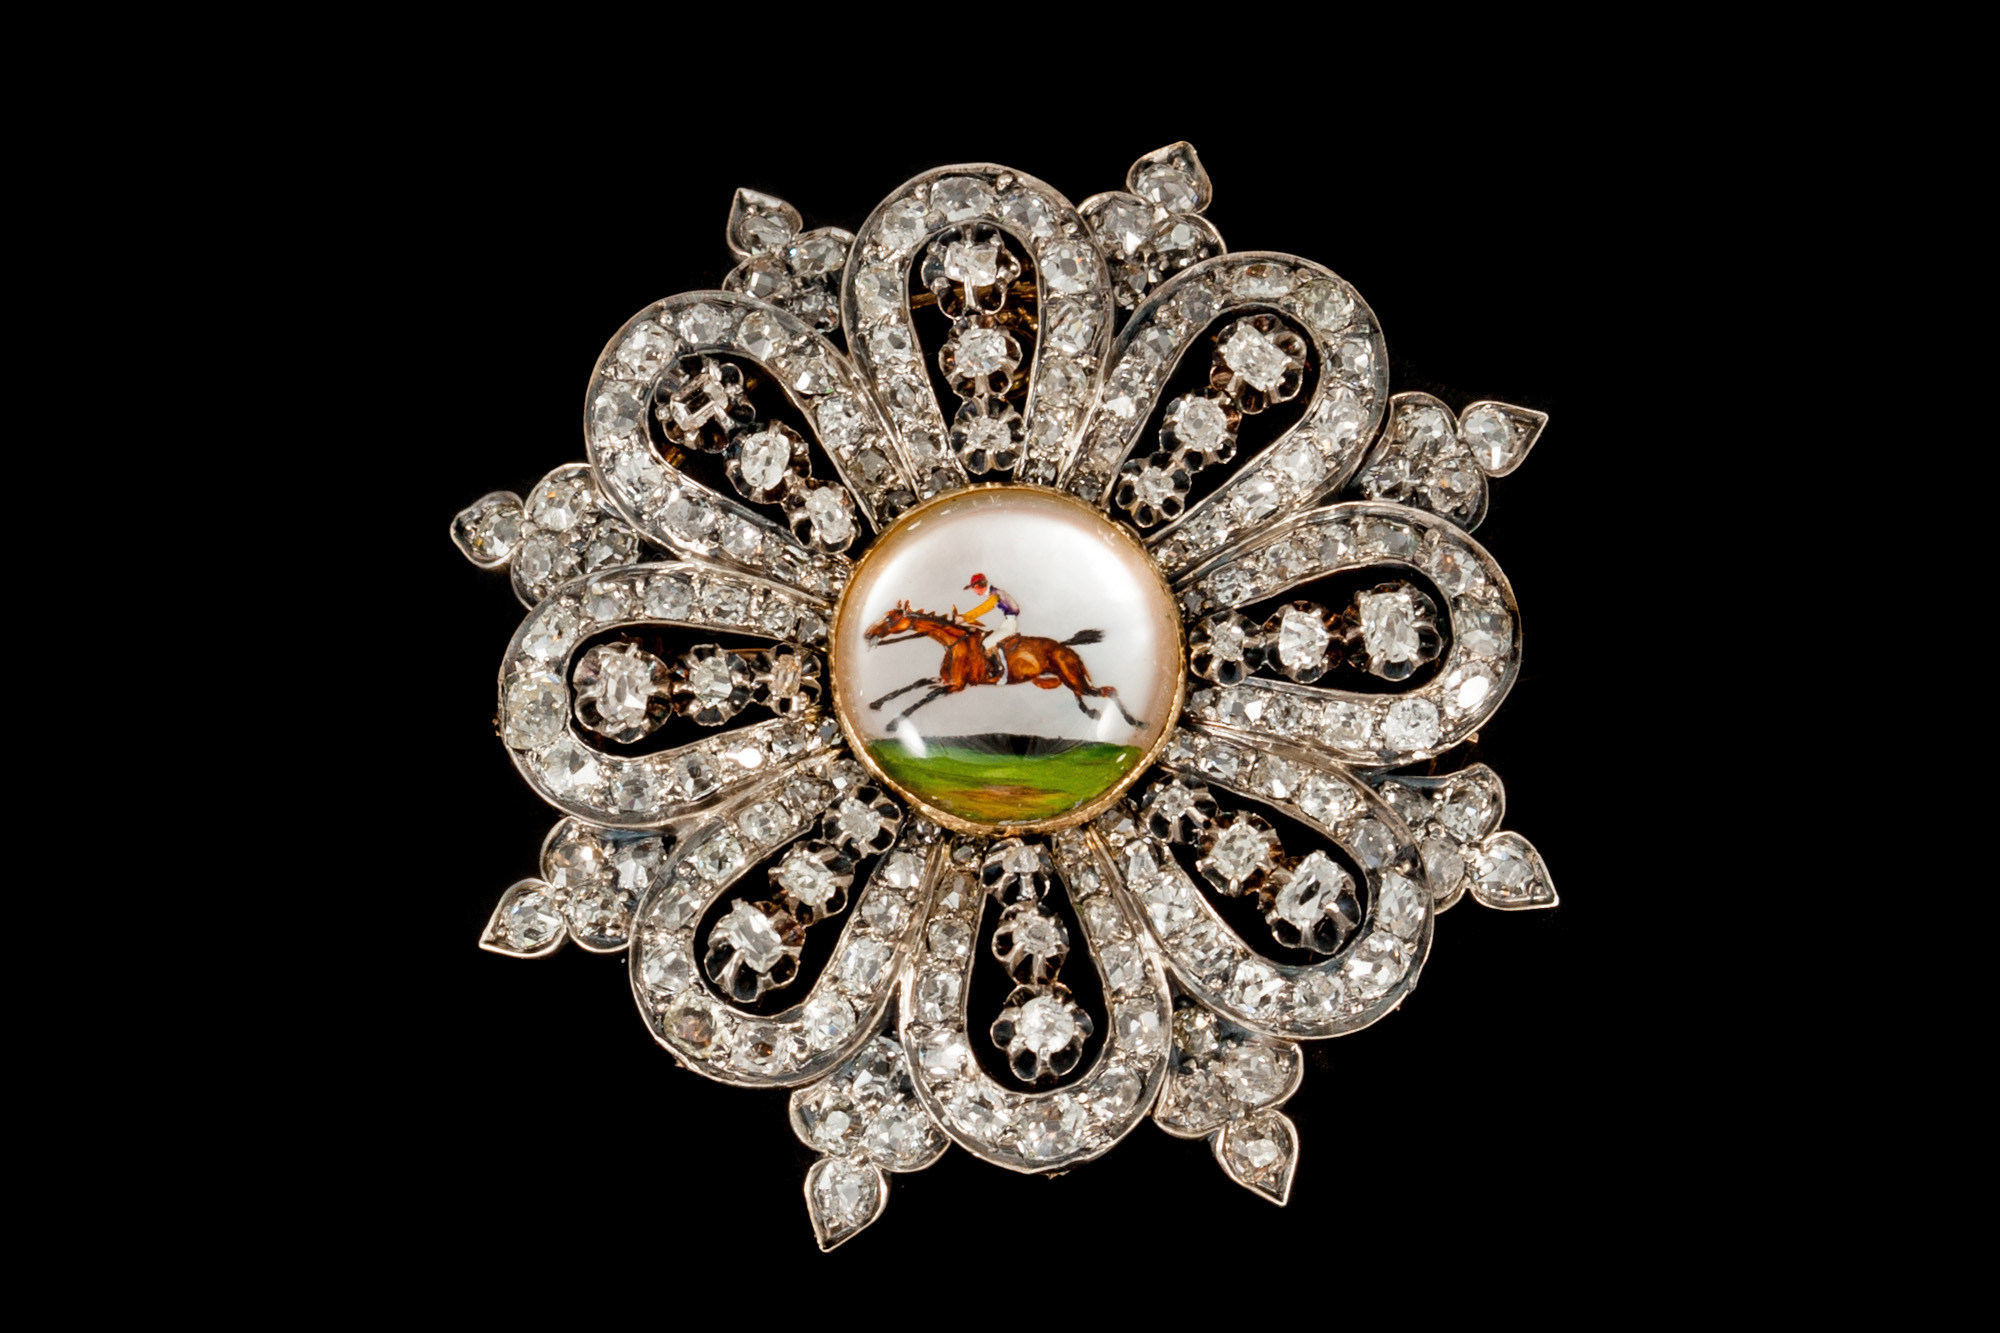 Lot 52 - AN EDWARDIAN DIAMOND BROOCH, set throughout with old cut diamonds of approx. 9.